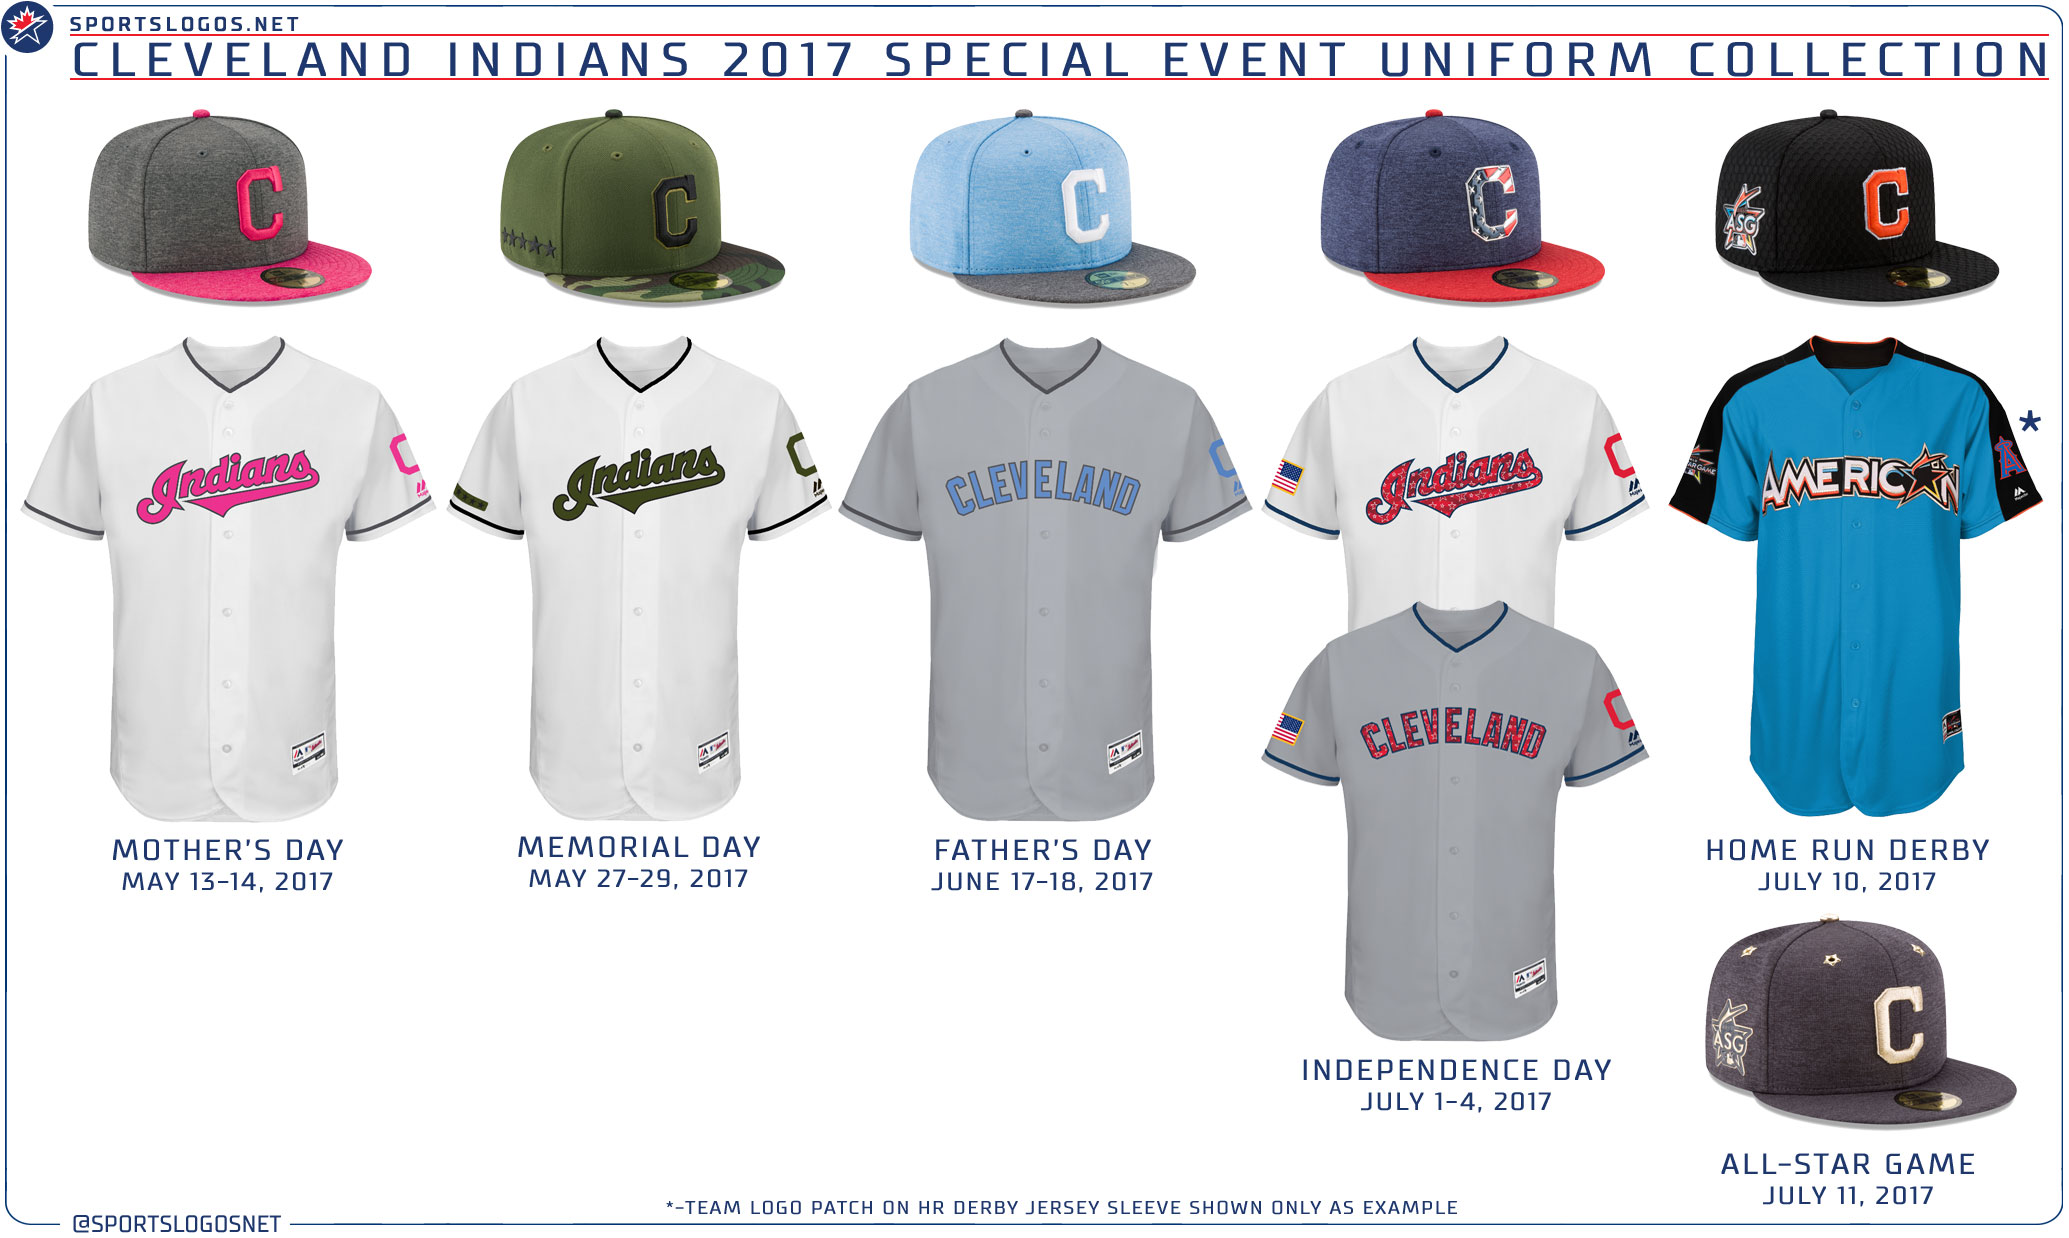 59252fb7c0f MLB Unveils 2017 Holiday Uniforms